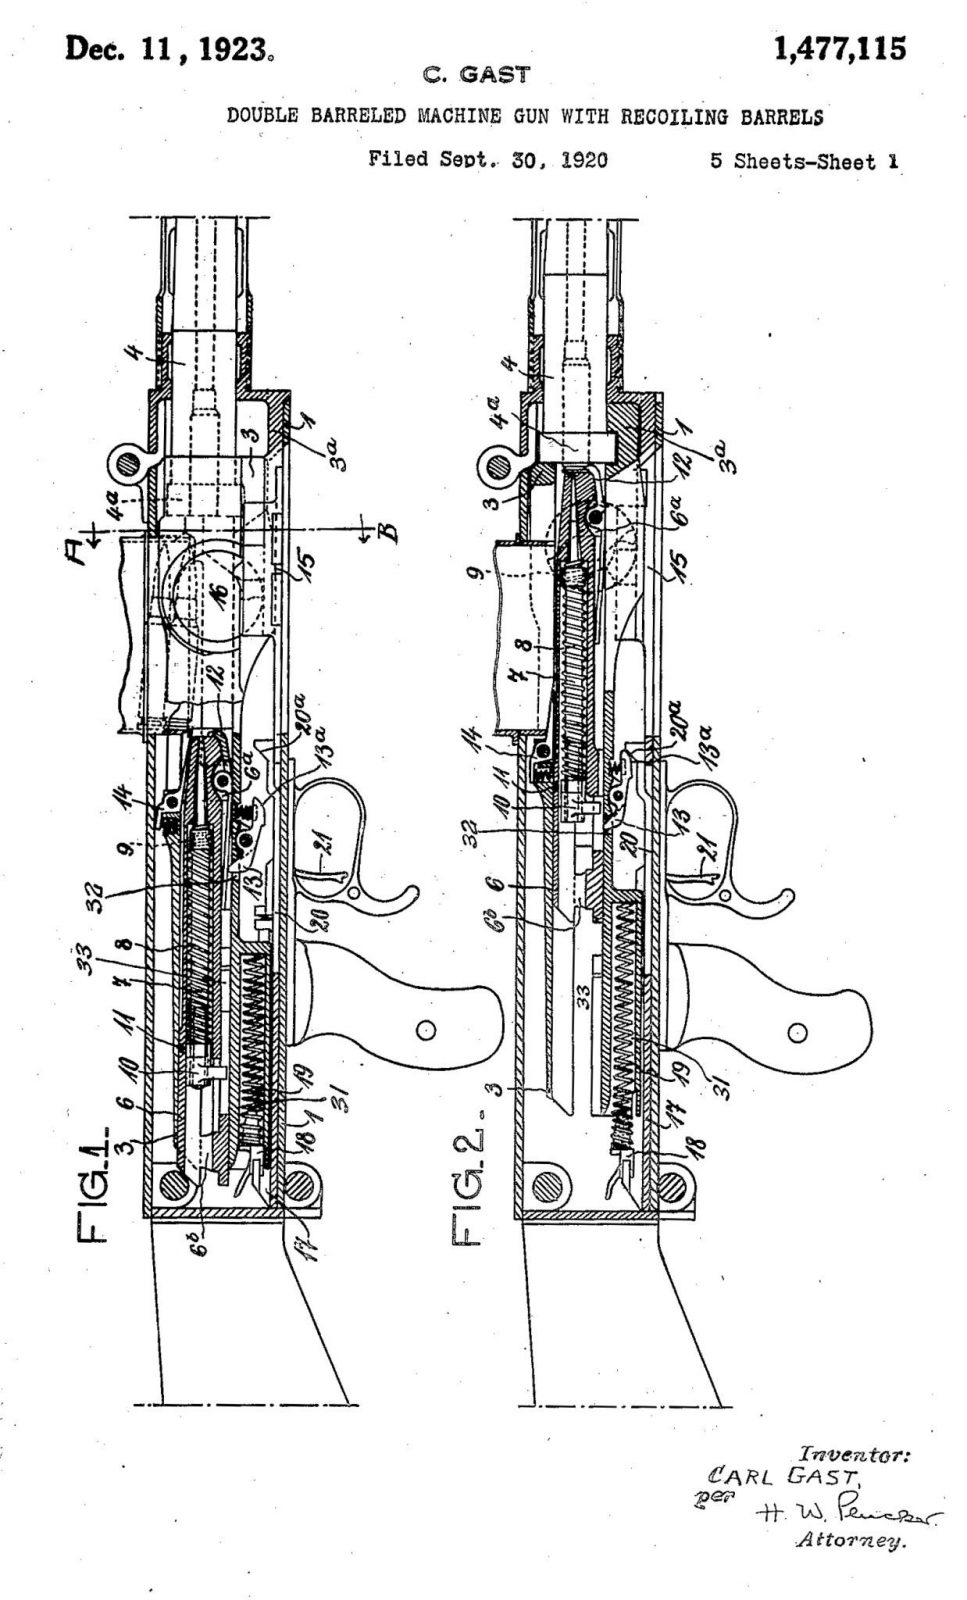 DOUBLE BARRELED MACHINE GUN WITH RECOILING BARRELS